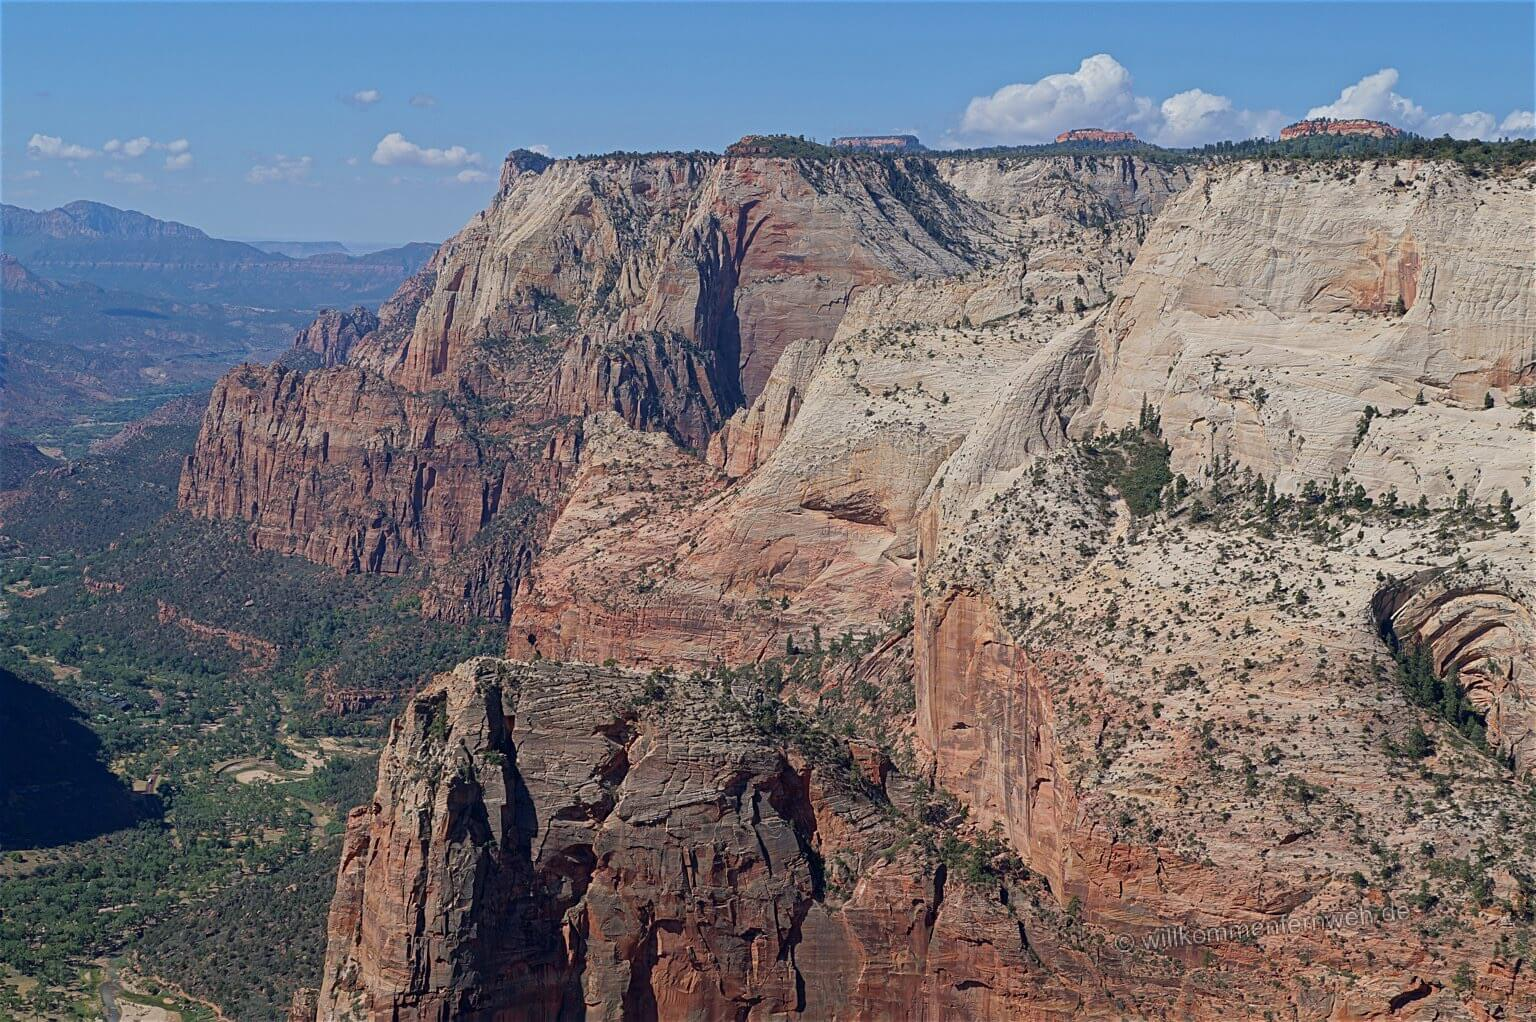 Blick vom Observation Point in den Zion Canyon